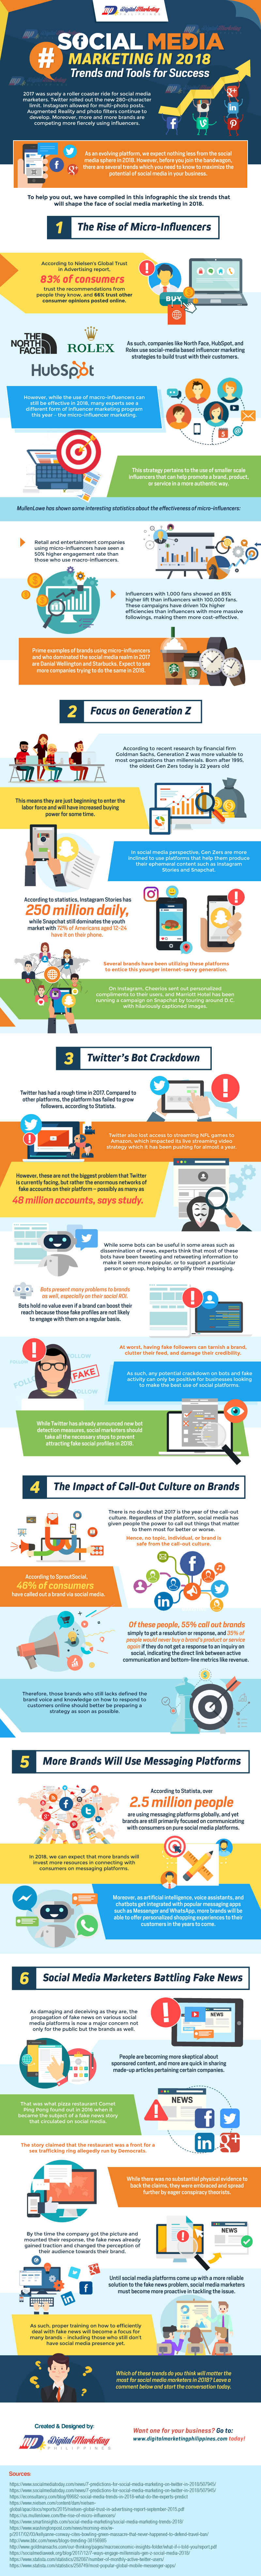 Social Media Marketing in 2018 –Trends and Tools for Success [Infographic]